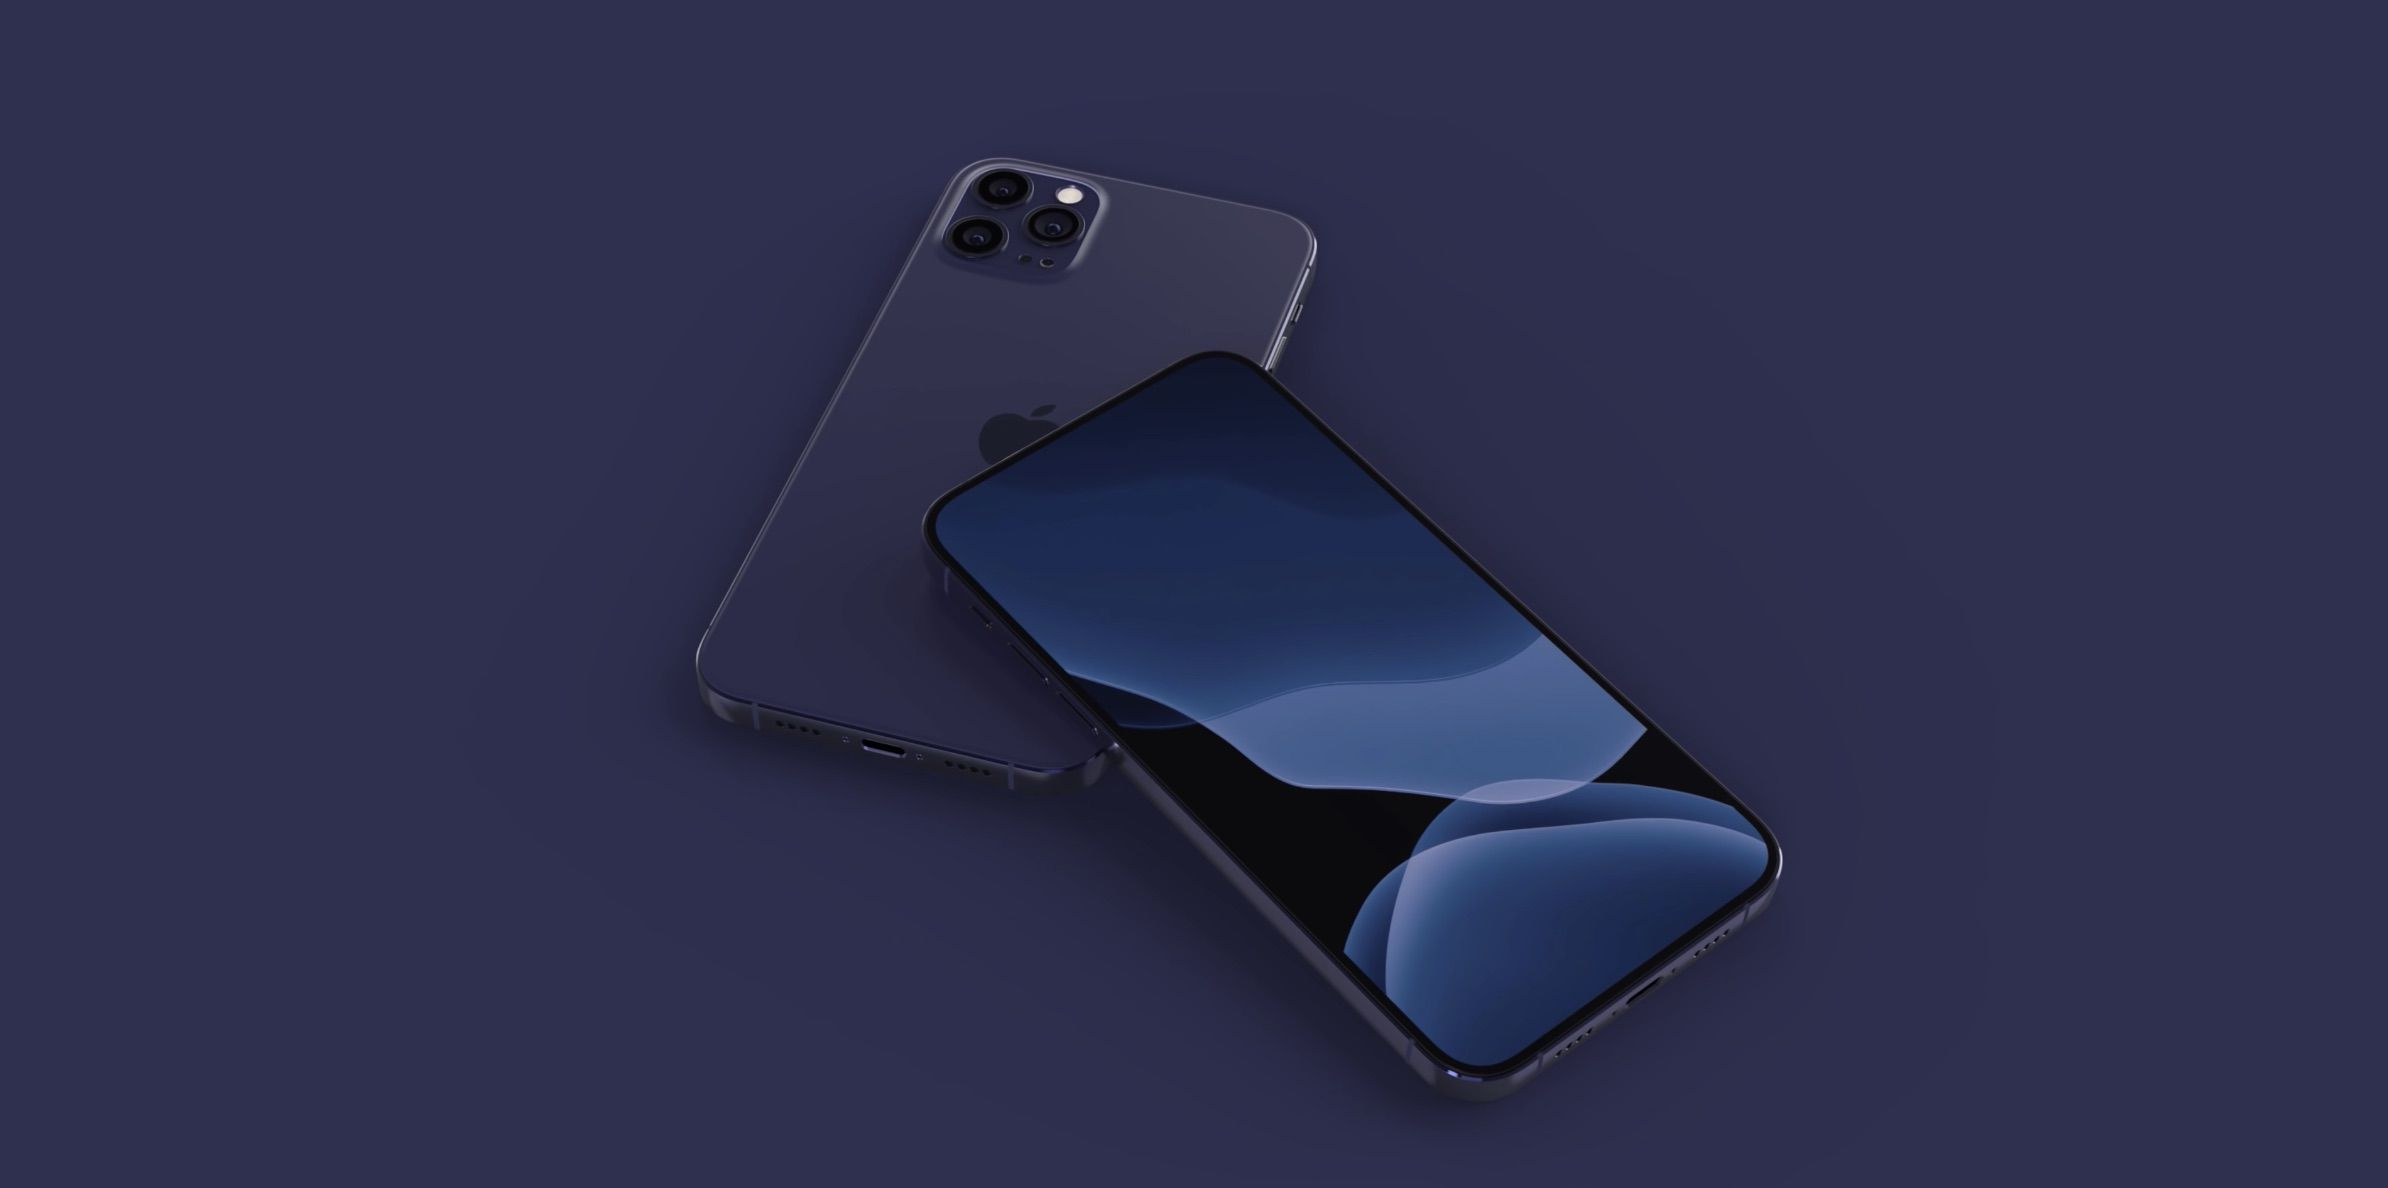 Iphone 12 To Come In Dark Blue Color Option Macrumors